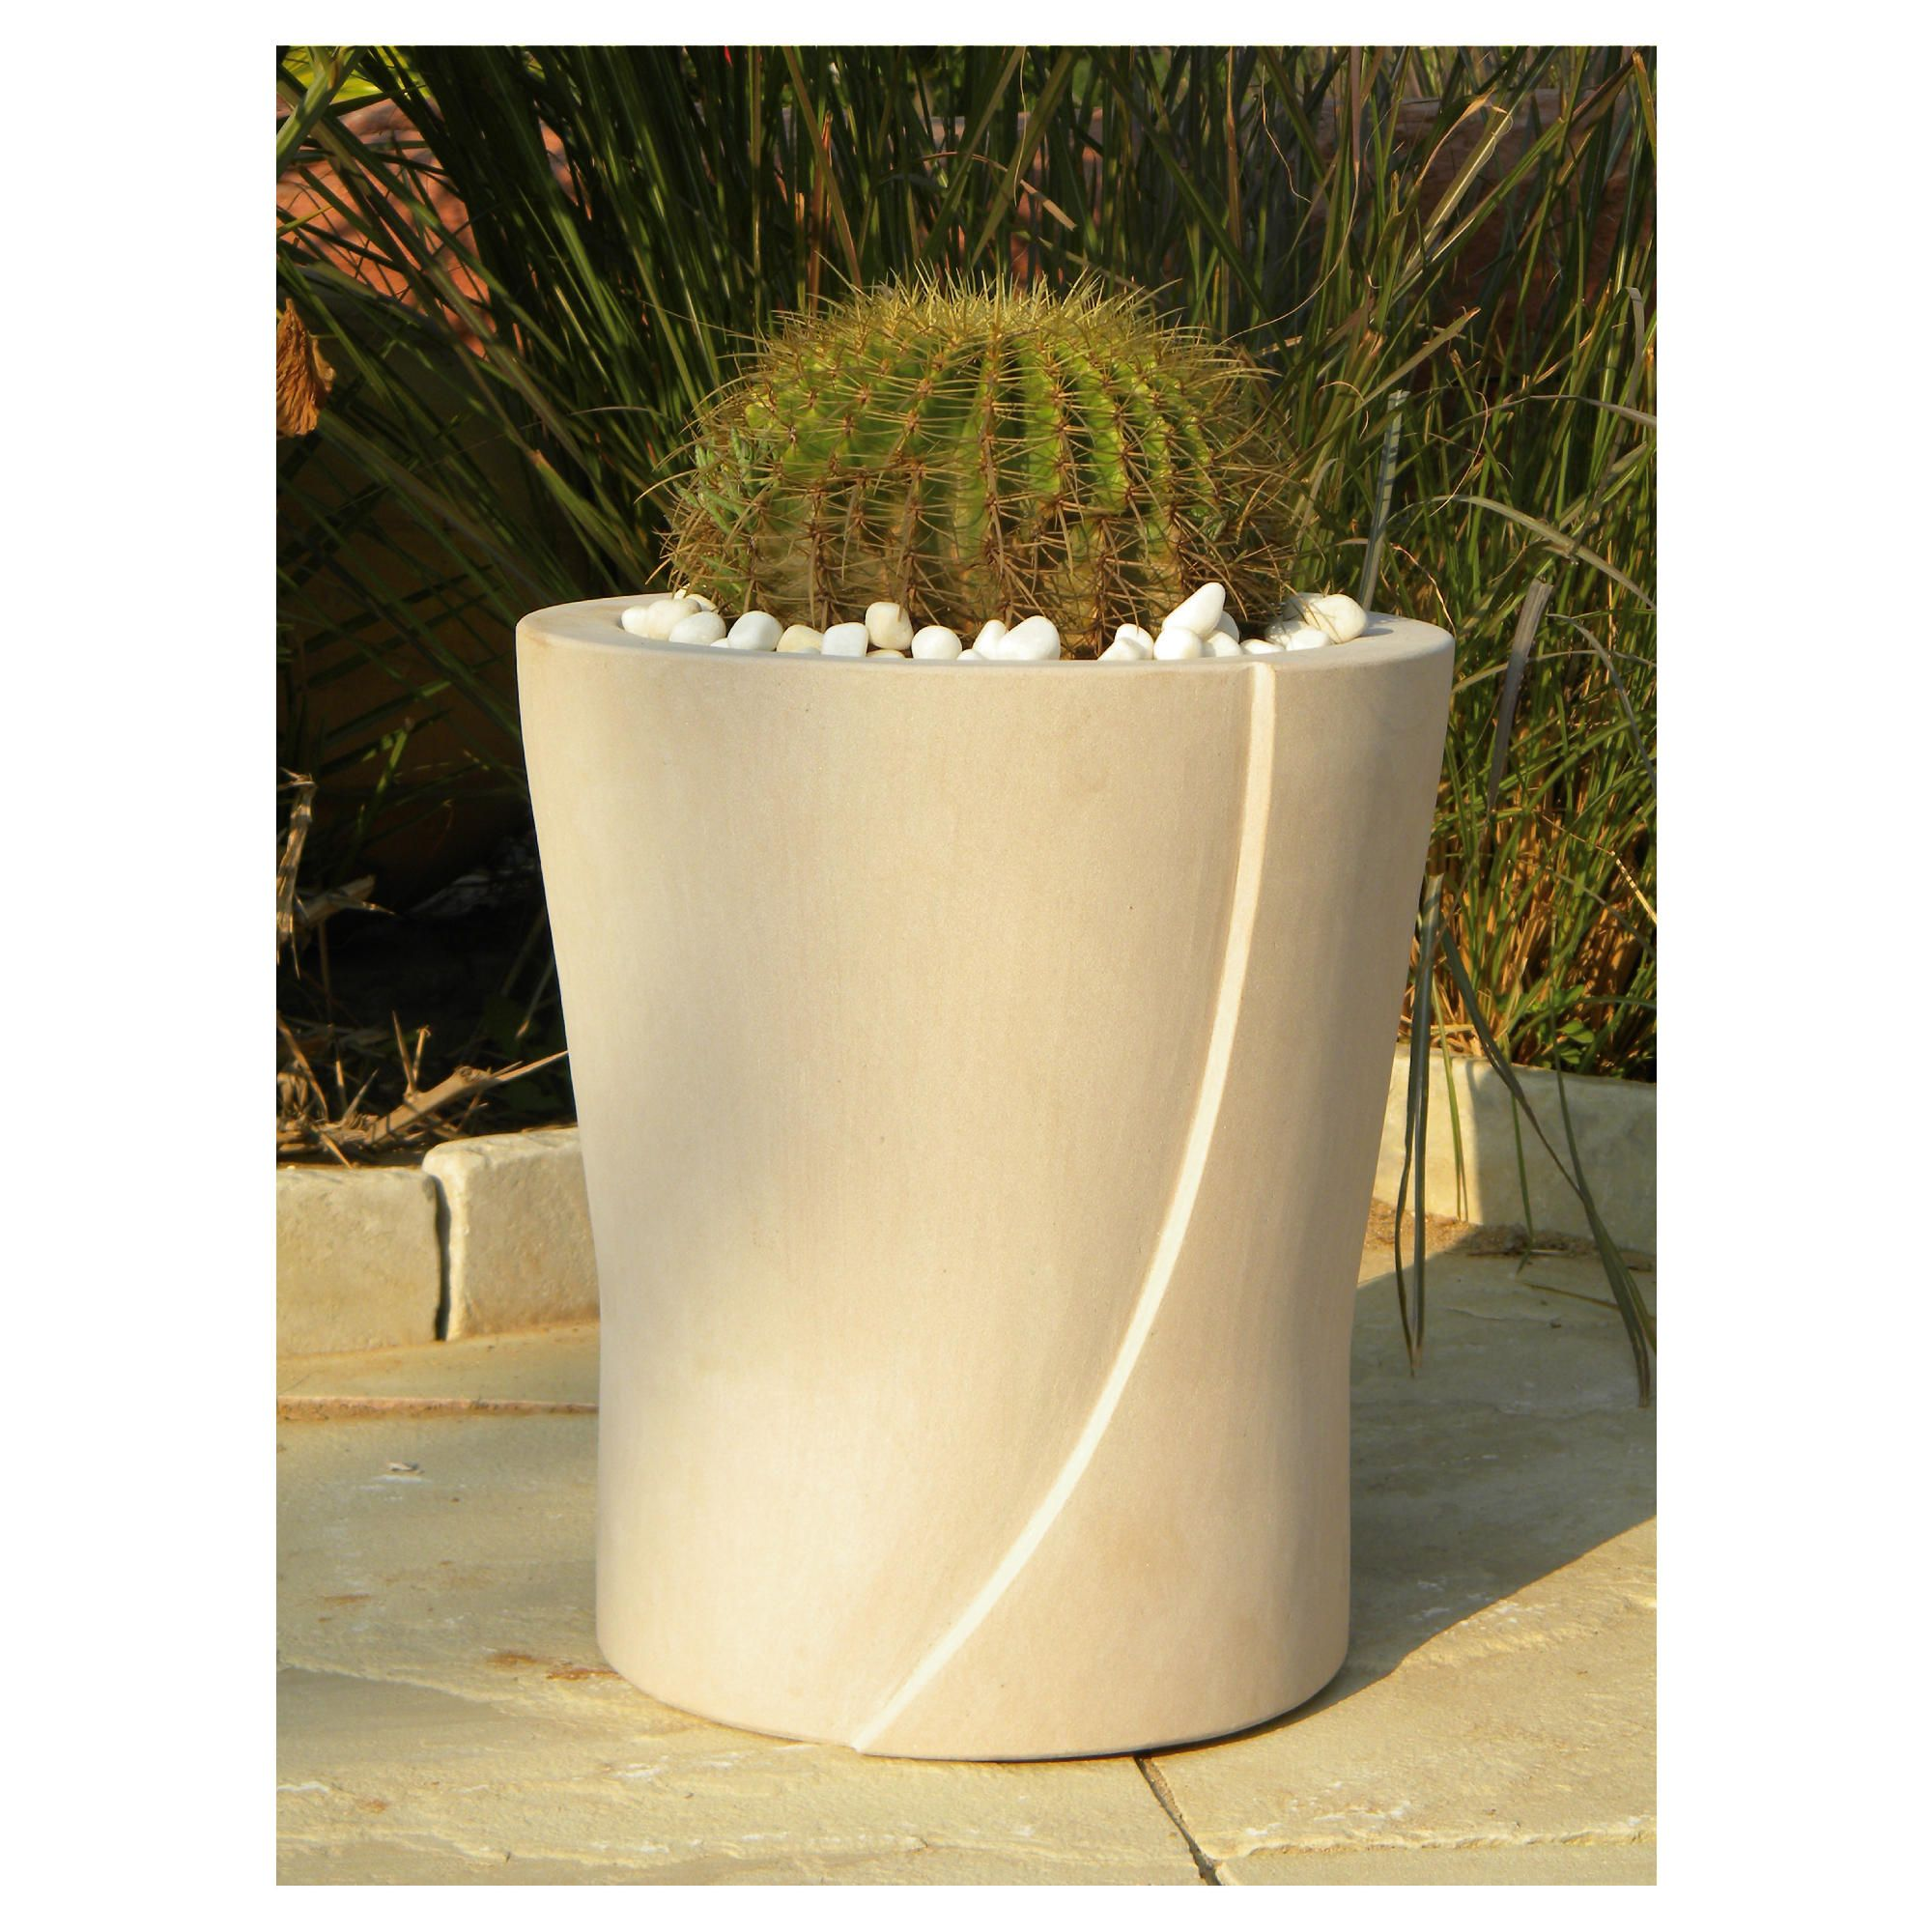 Lacerta Stone Planter Beige 40cm at Tesco Direct